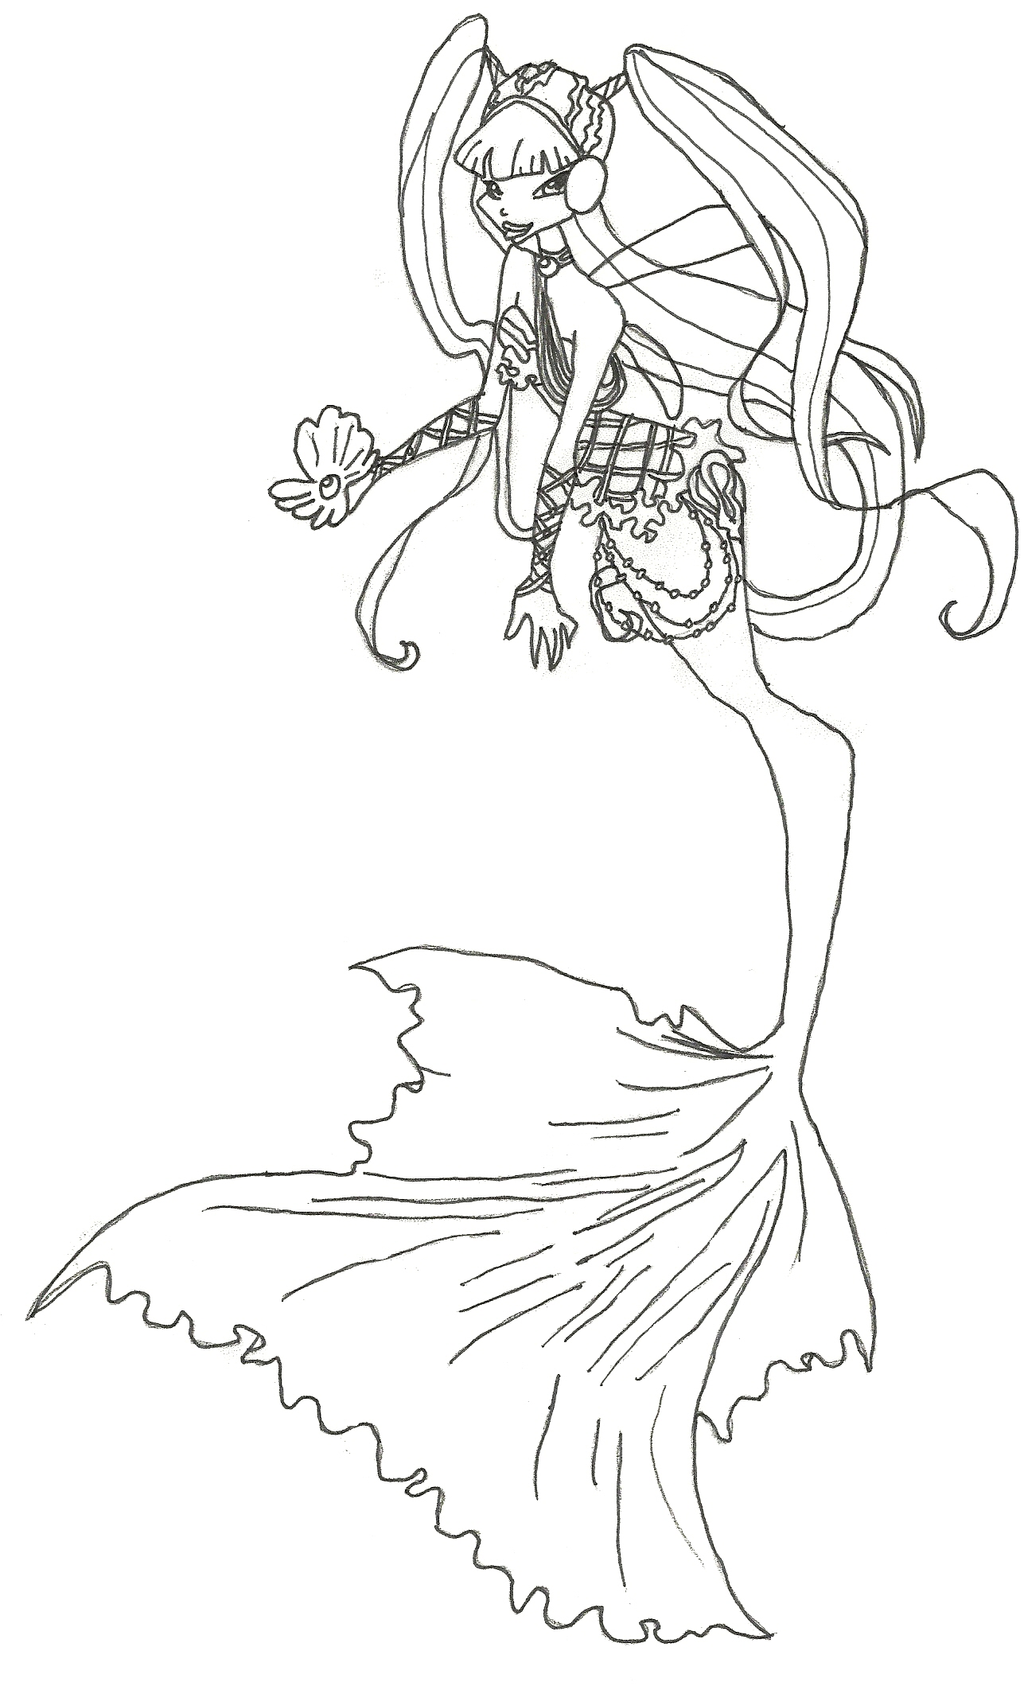 Winx Club Mermaid Musa Coloring Page By Winxmagic237 On Winx Club Musa Coloring Pages